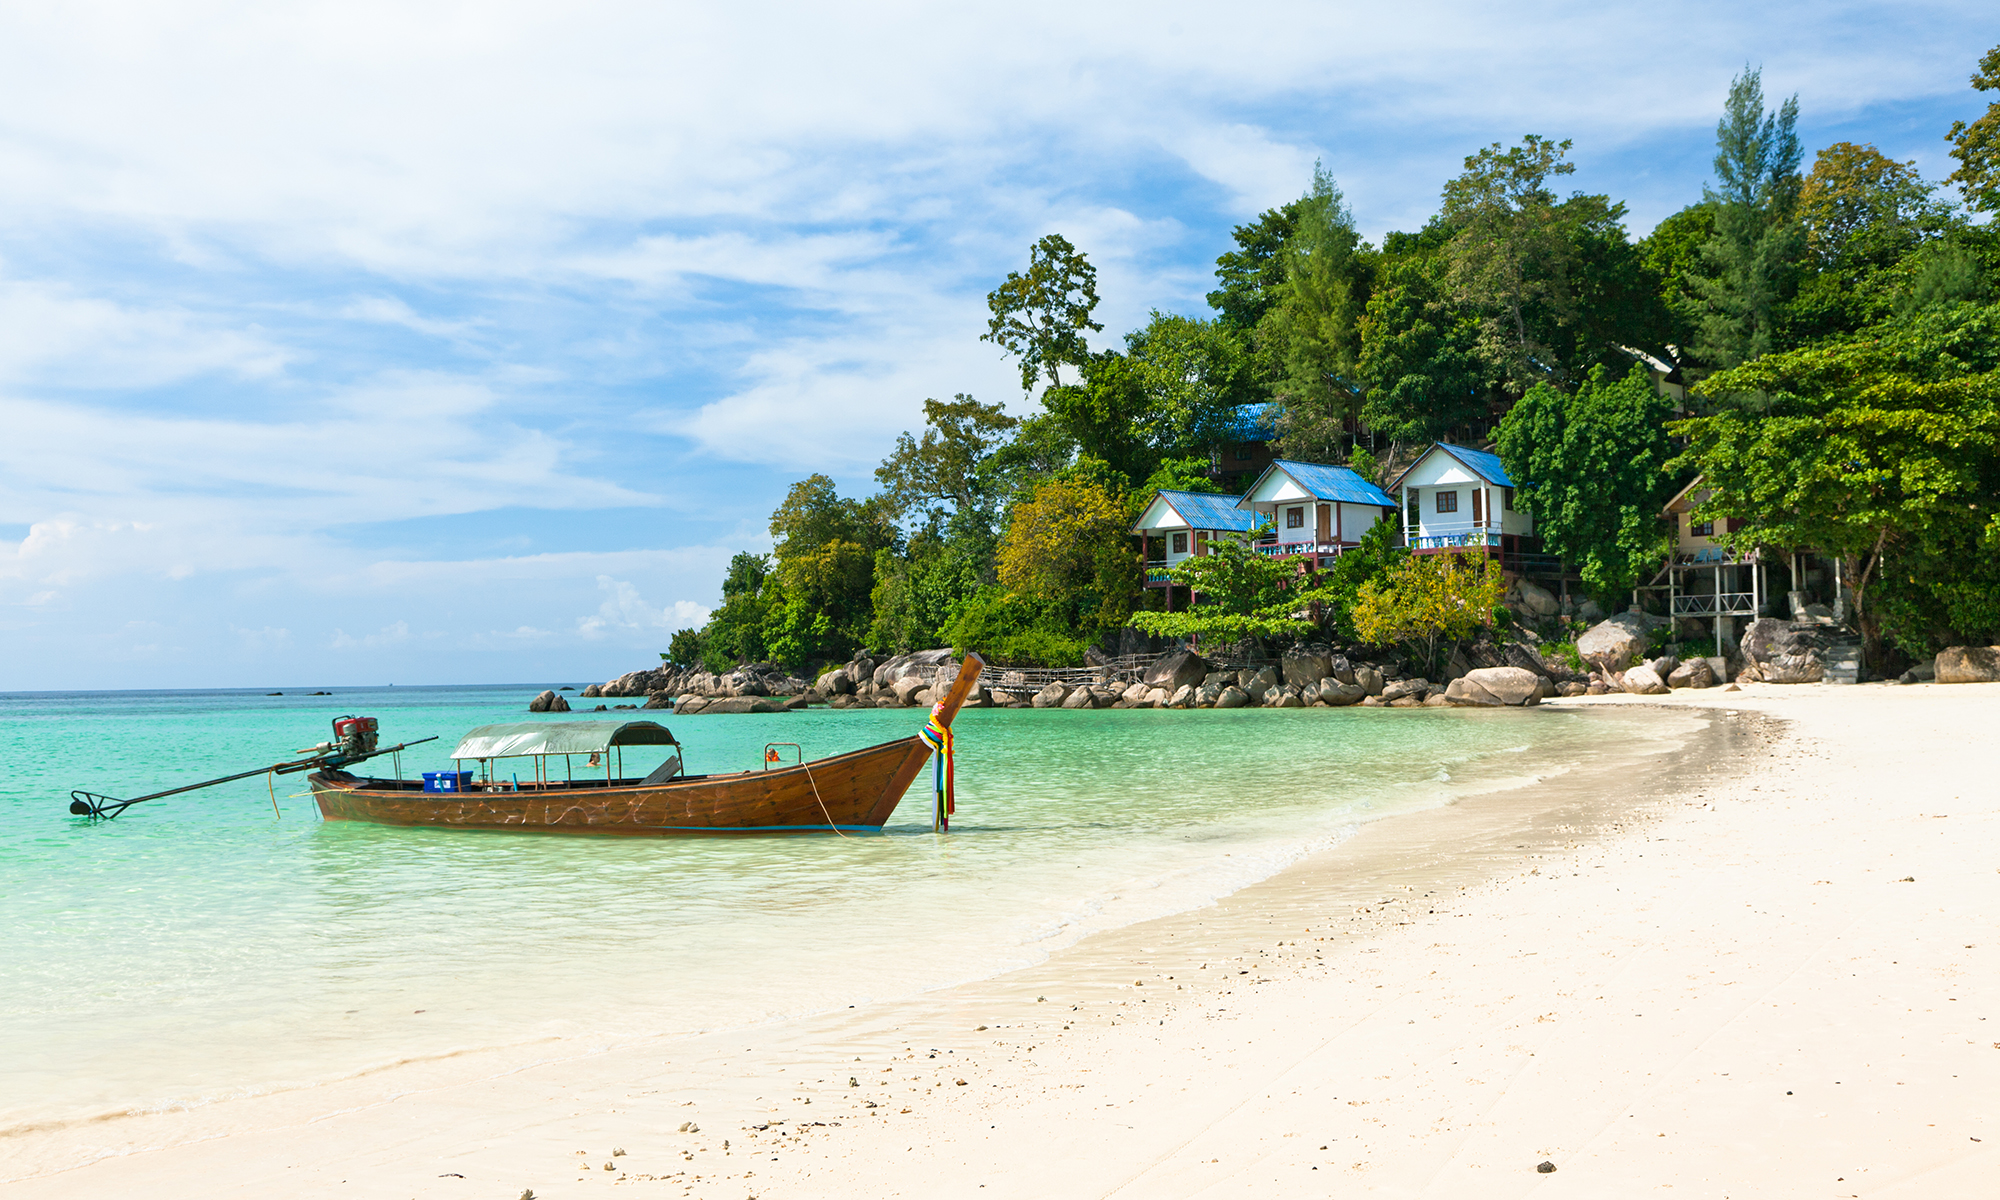 The hidden tropical paradise, Koh Lipe, Thailand